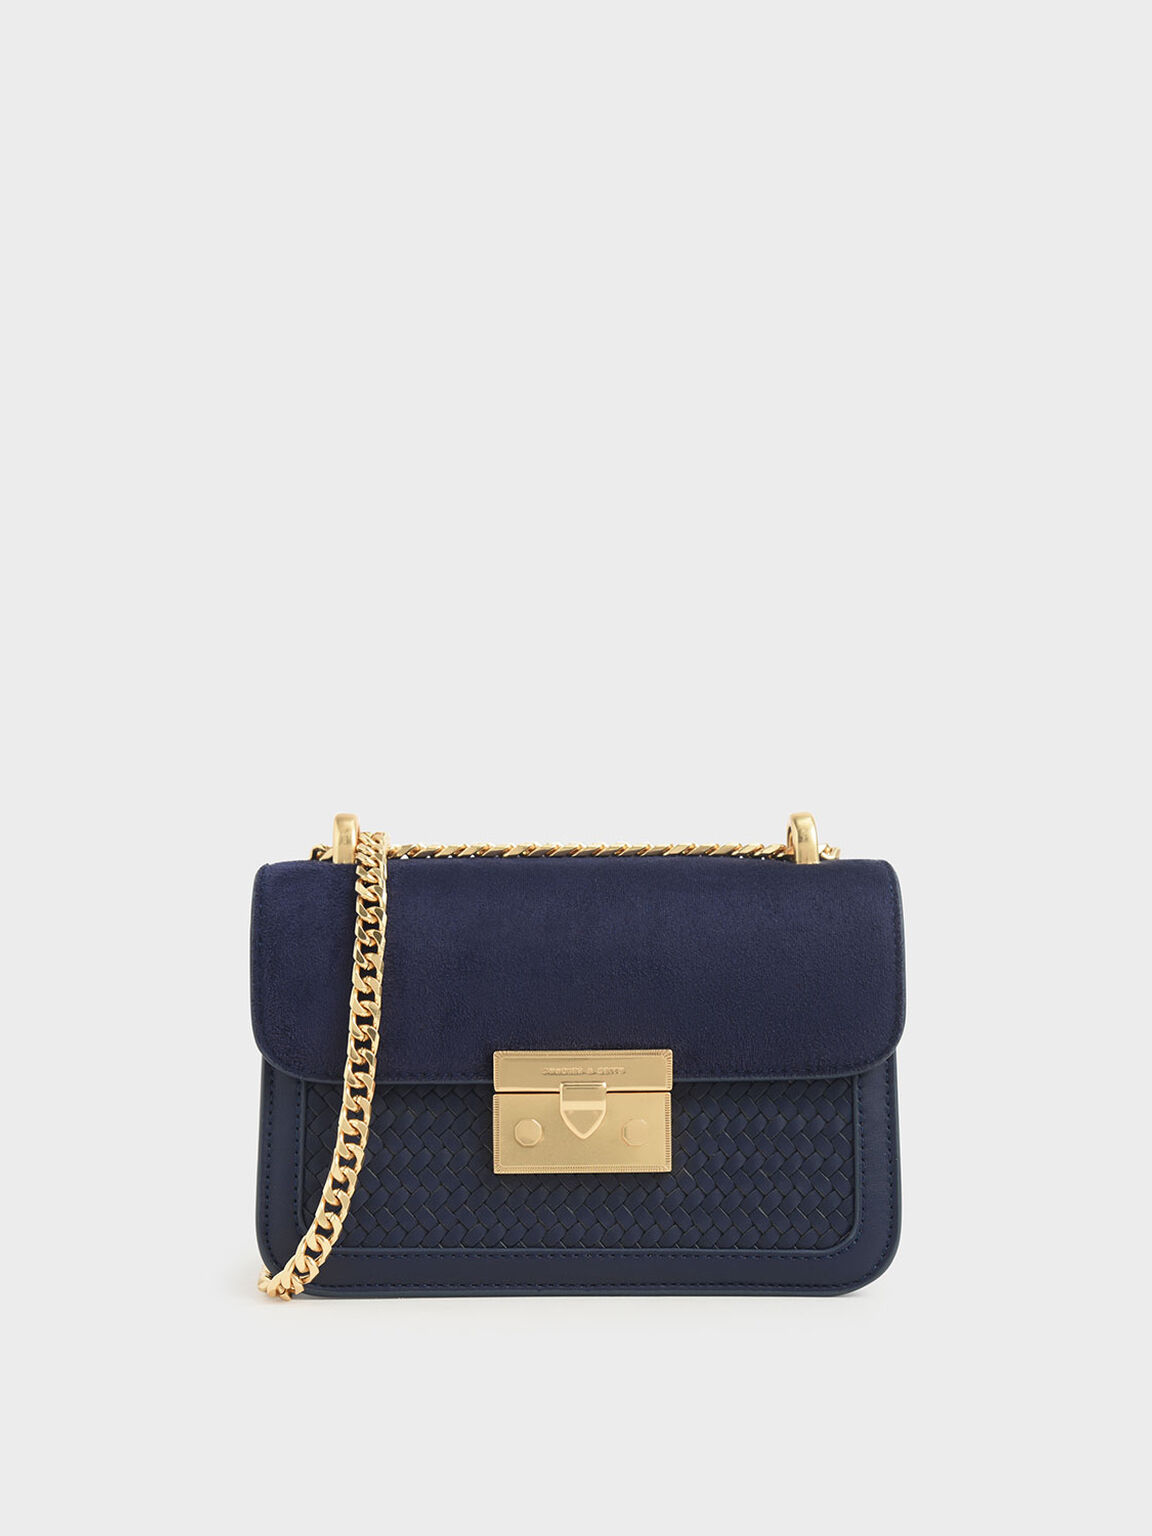 Woven Boxy Chain Strap Bag, Dark Blue, hi-res